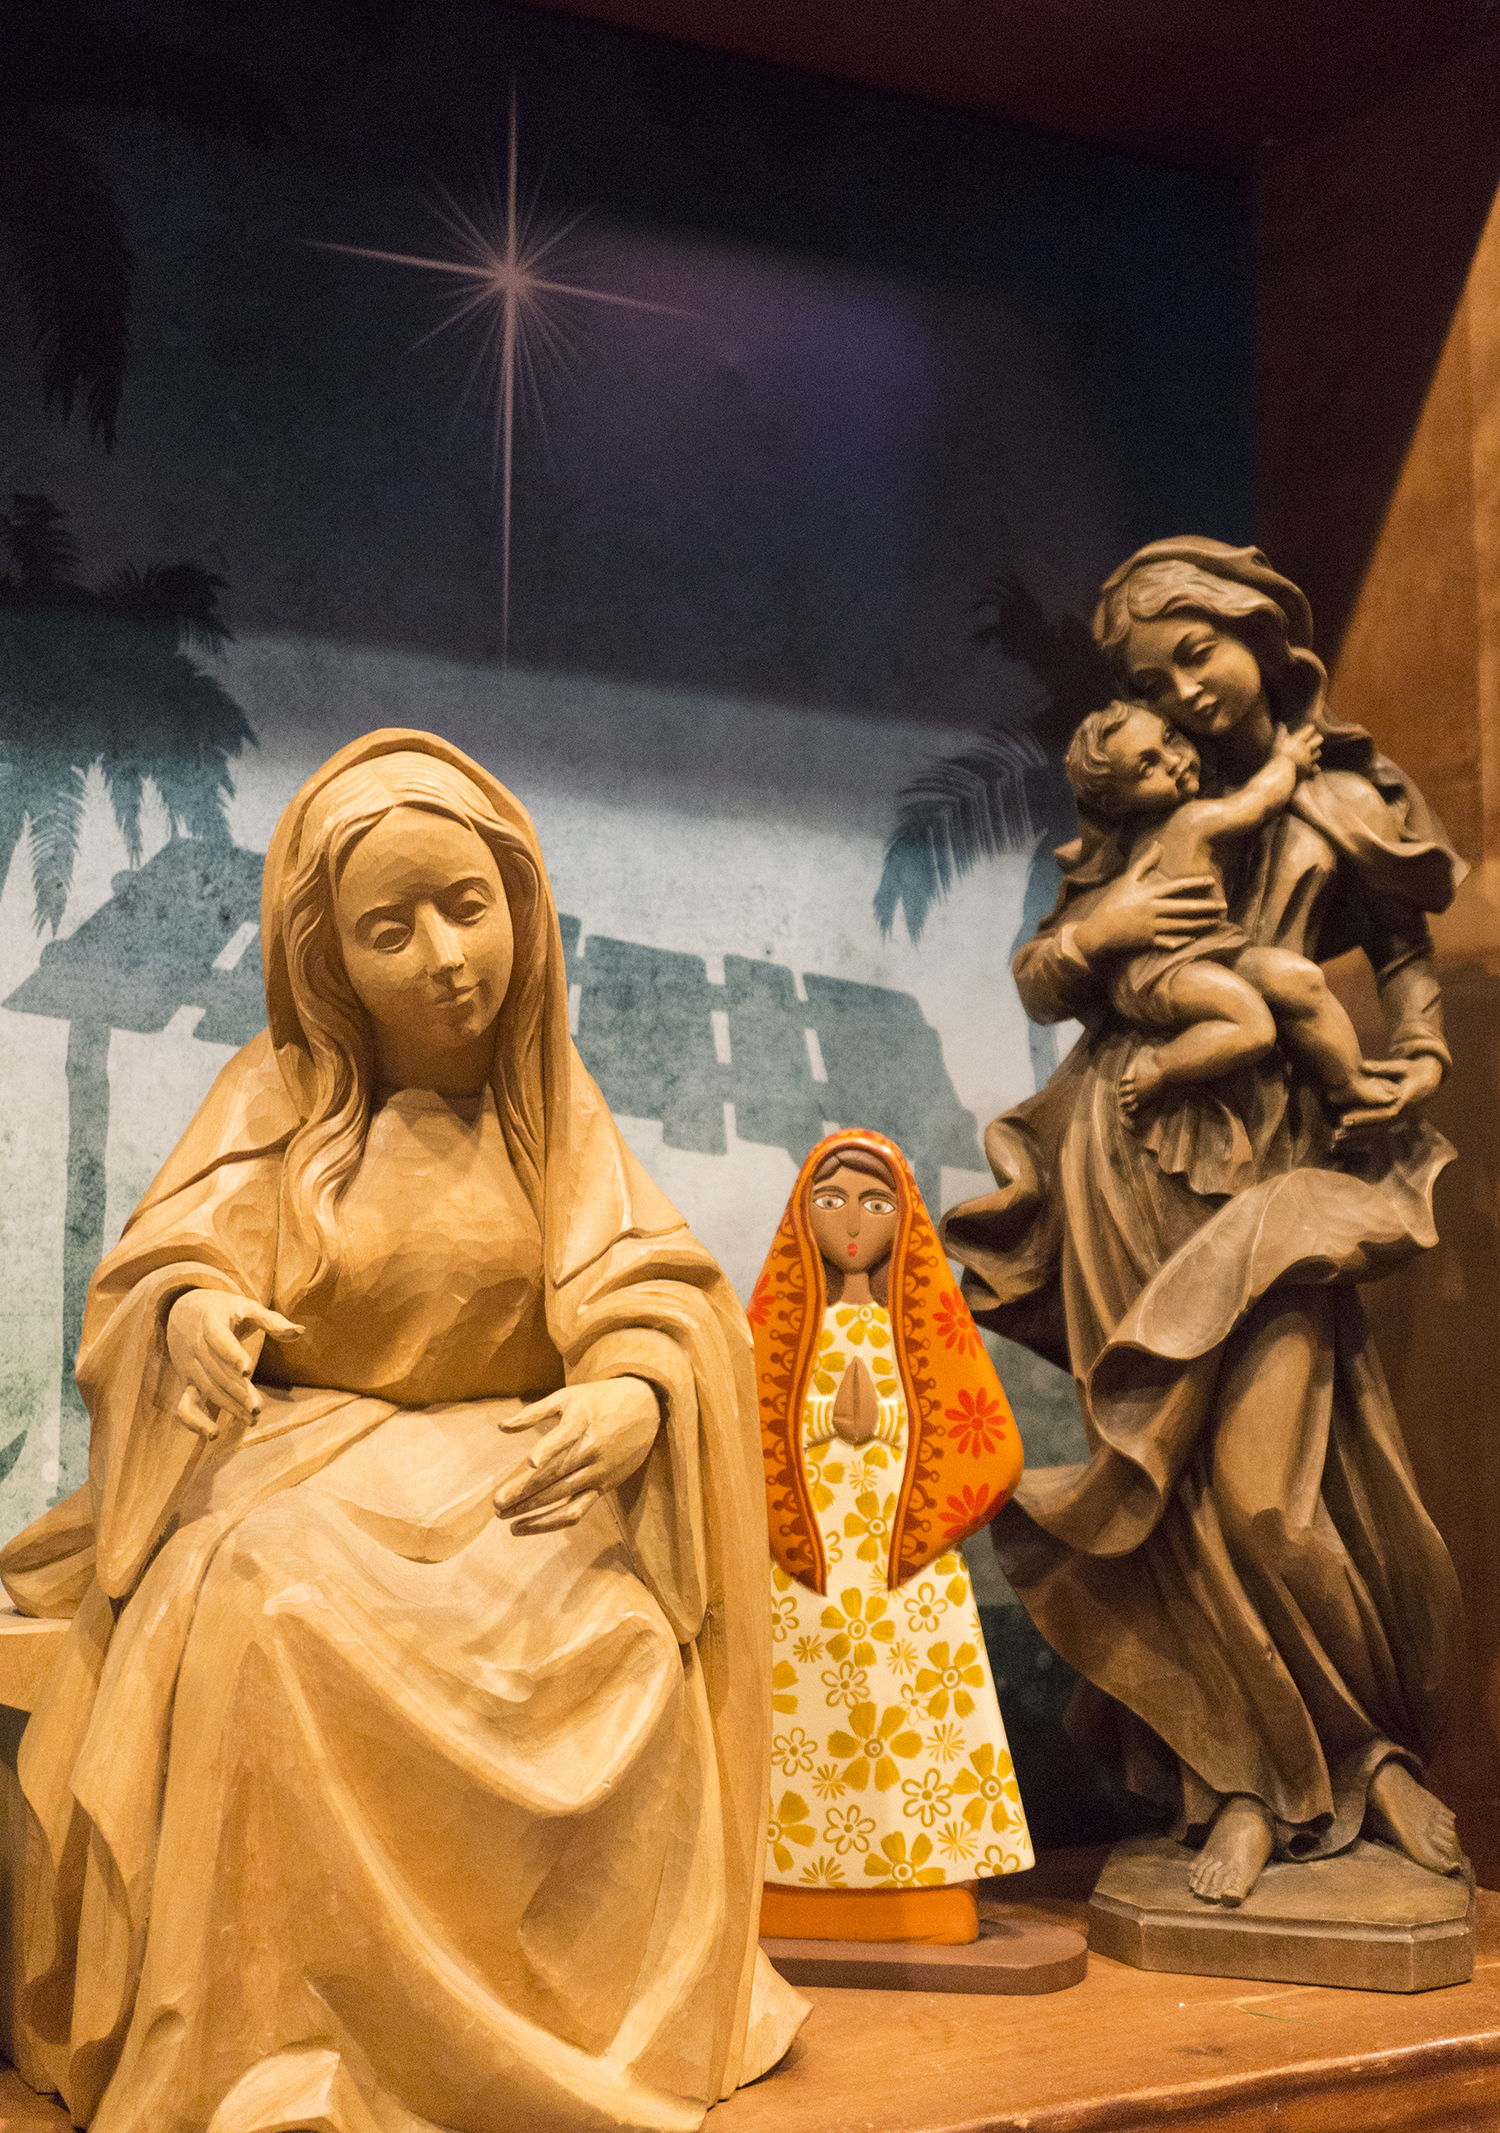 Figure 18: One of the themes of the  Do You See What I See? Imagery in Nativity Scenes  exhibition presents the history and symbolism of the depiction of Mary in Nativity scenes.